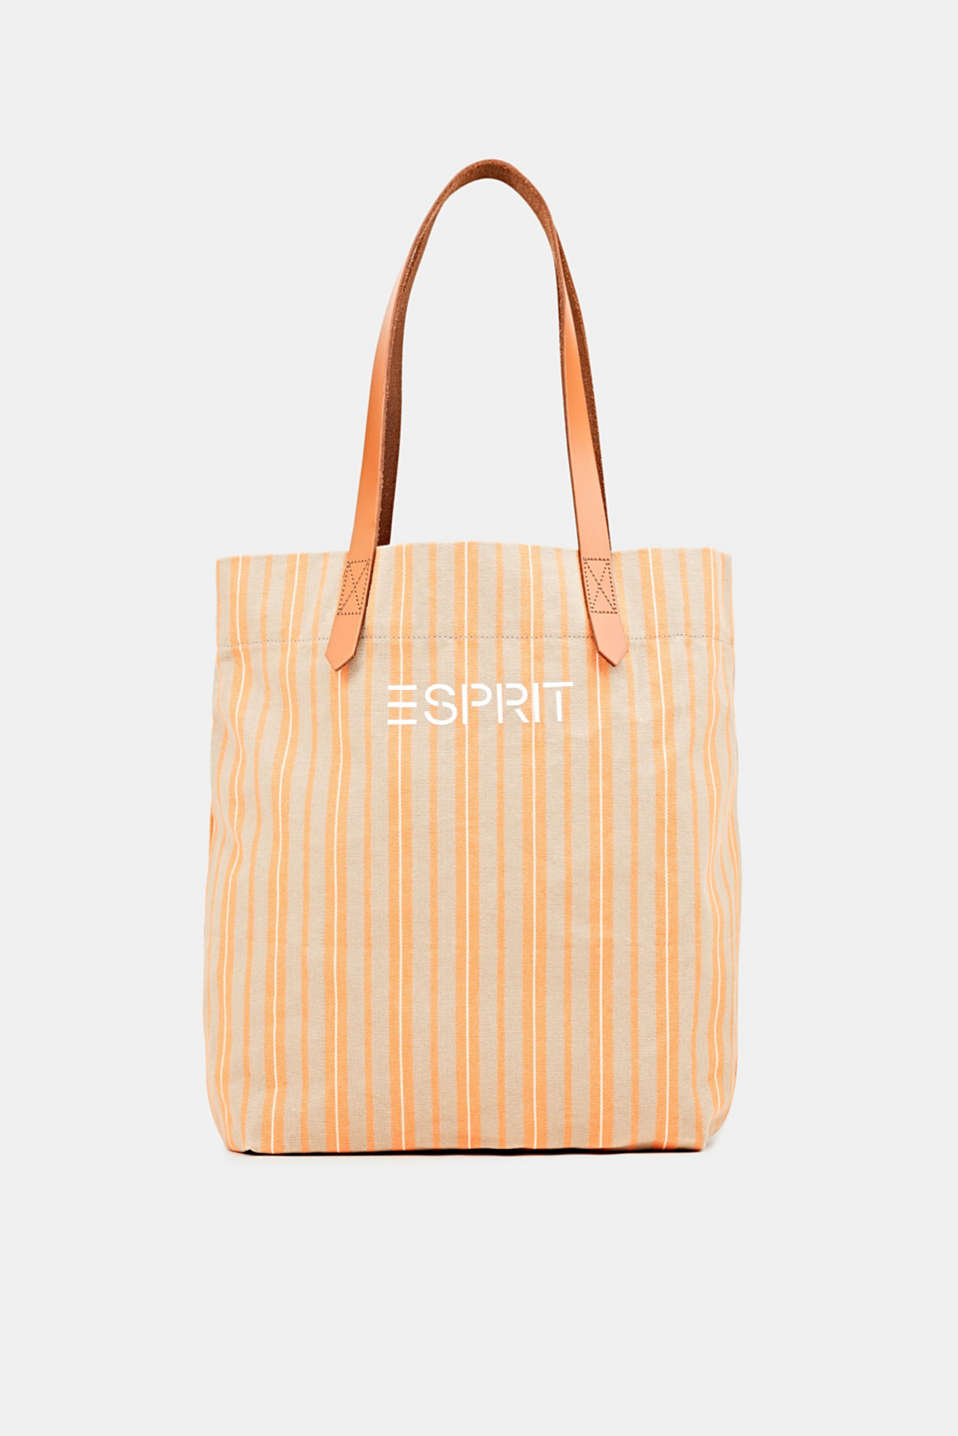 Esprit - Tote bag made of canvas with leather straps